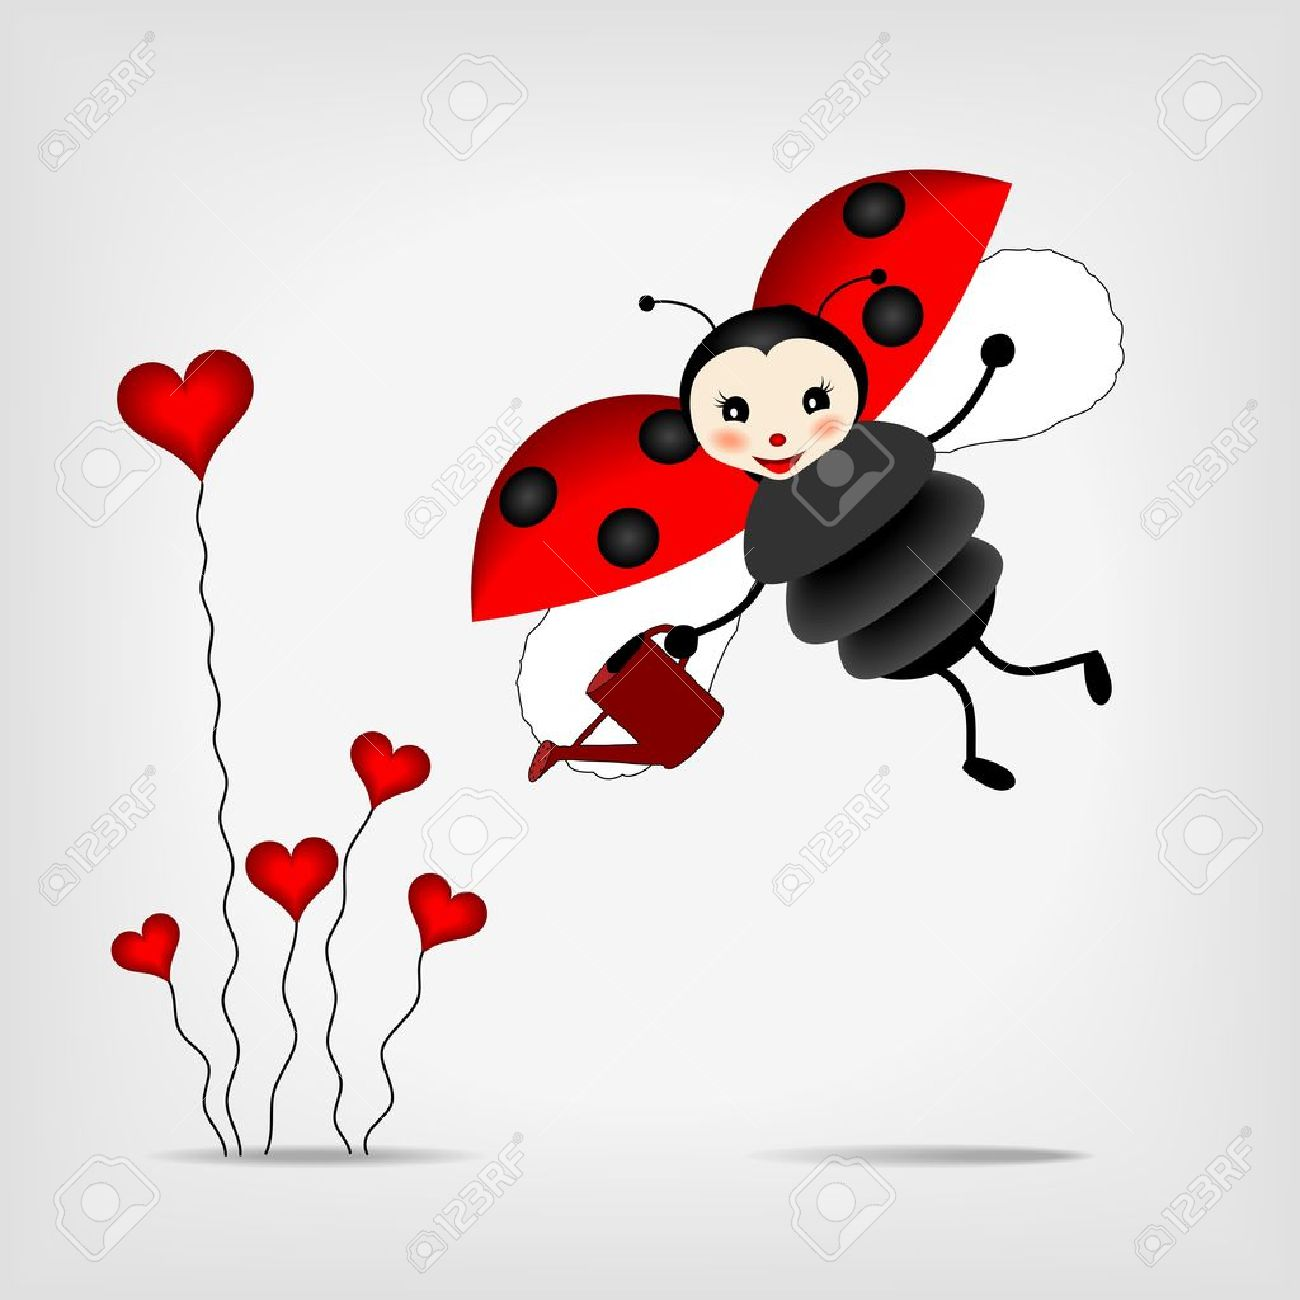 cute ladybug with sprinkler and red abstract flowers - vector illustration - 13558239